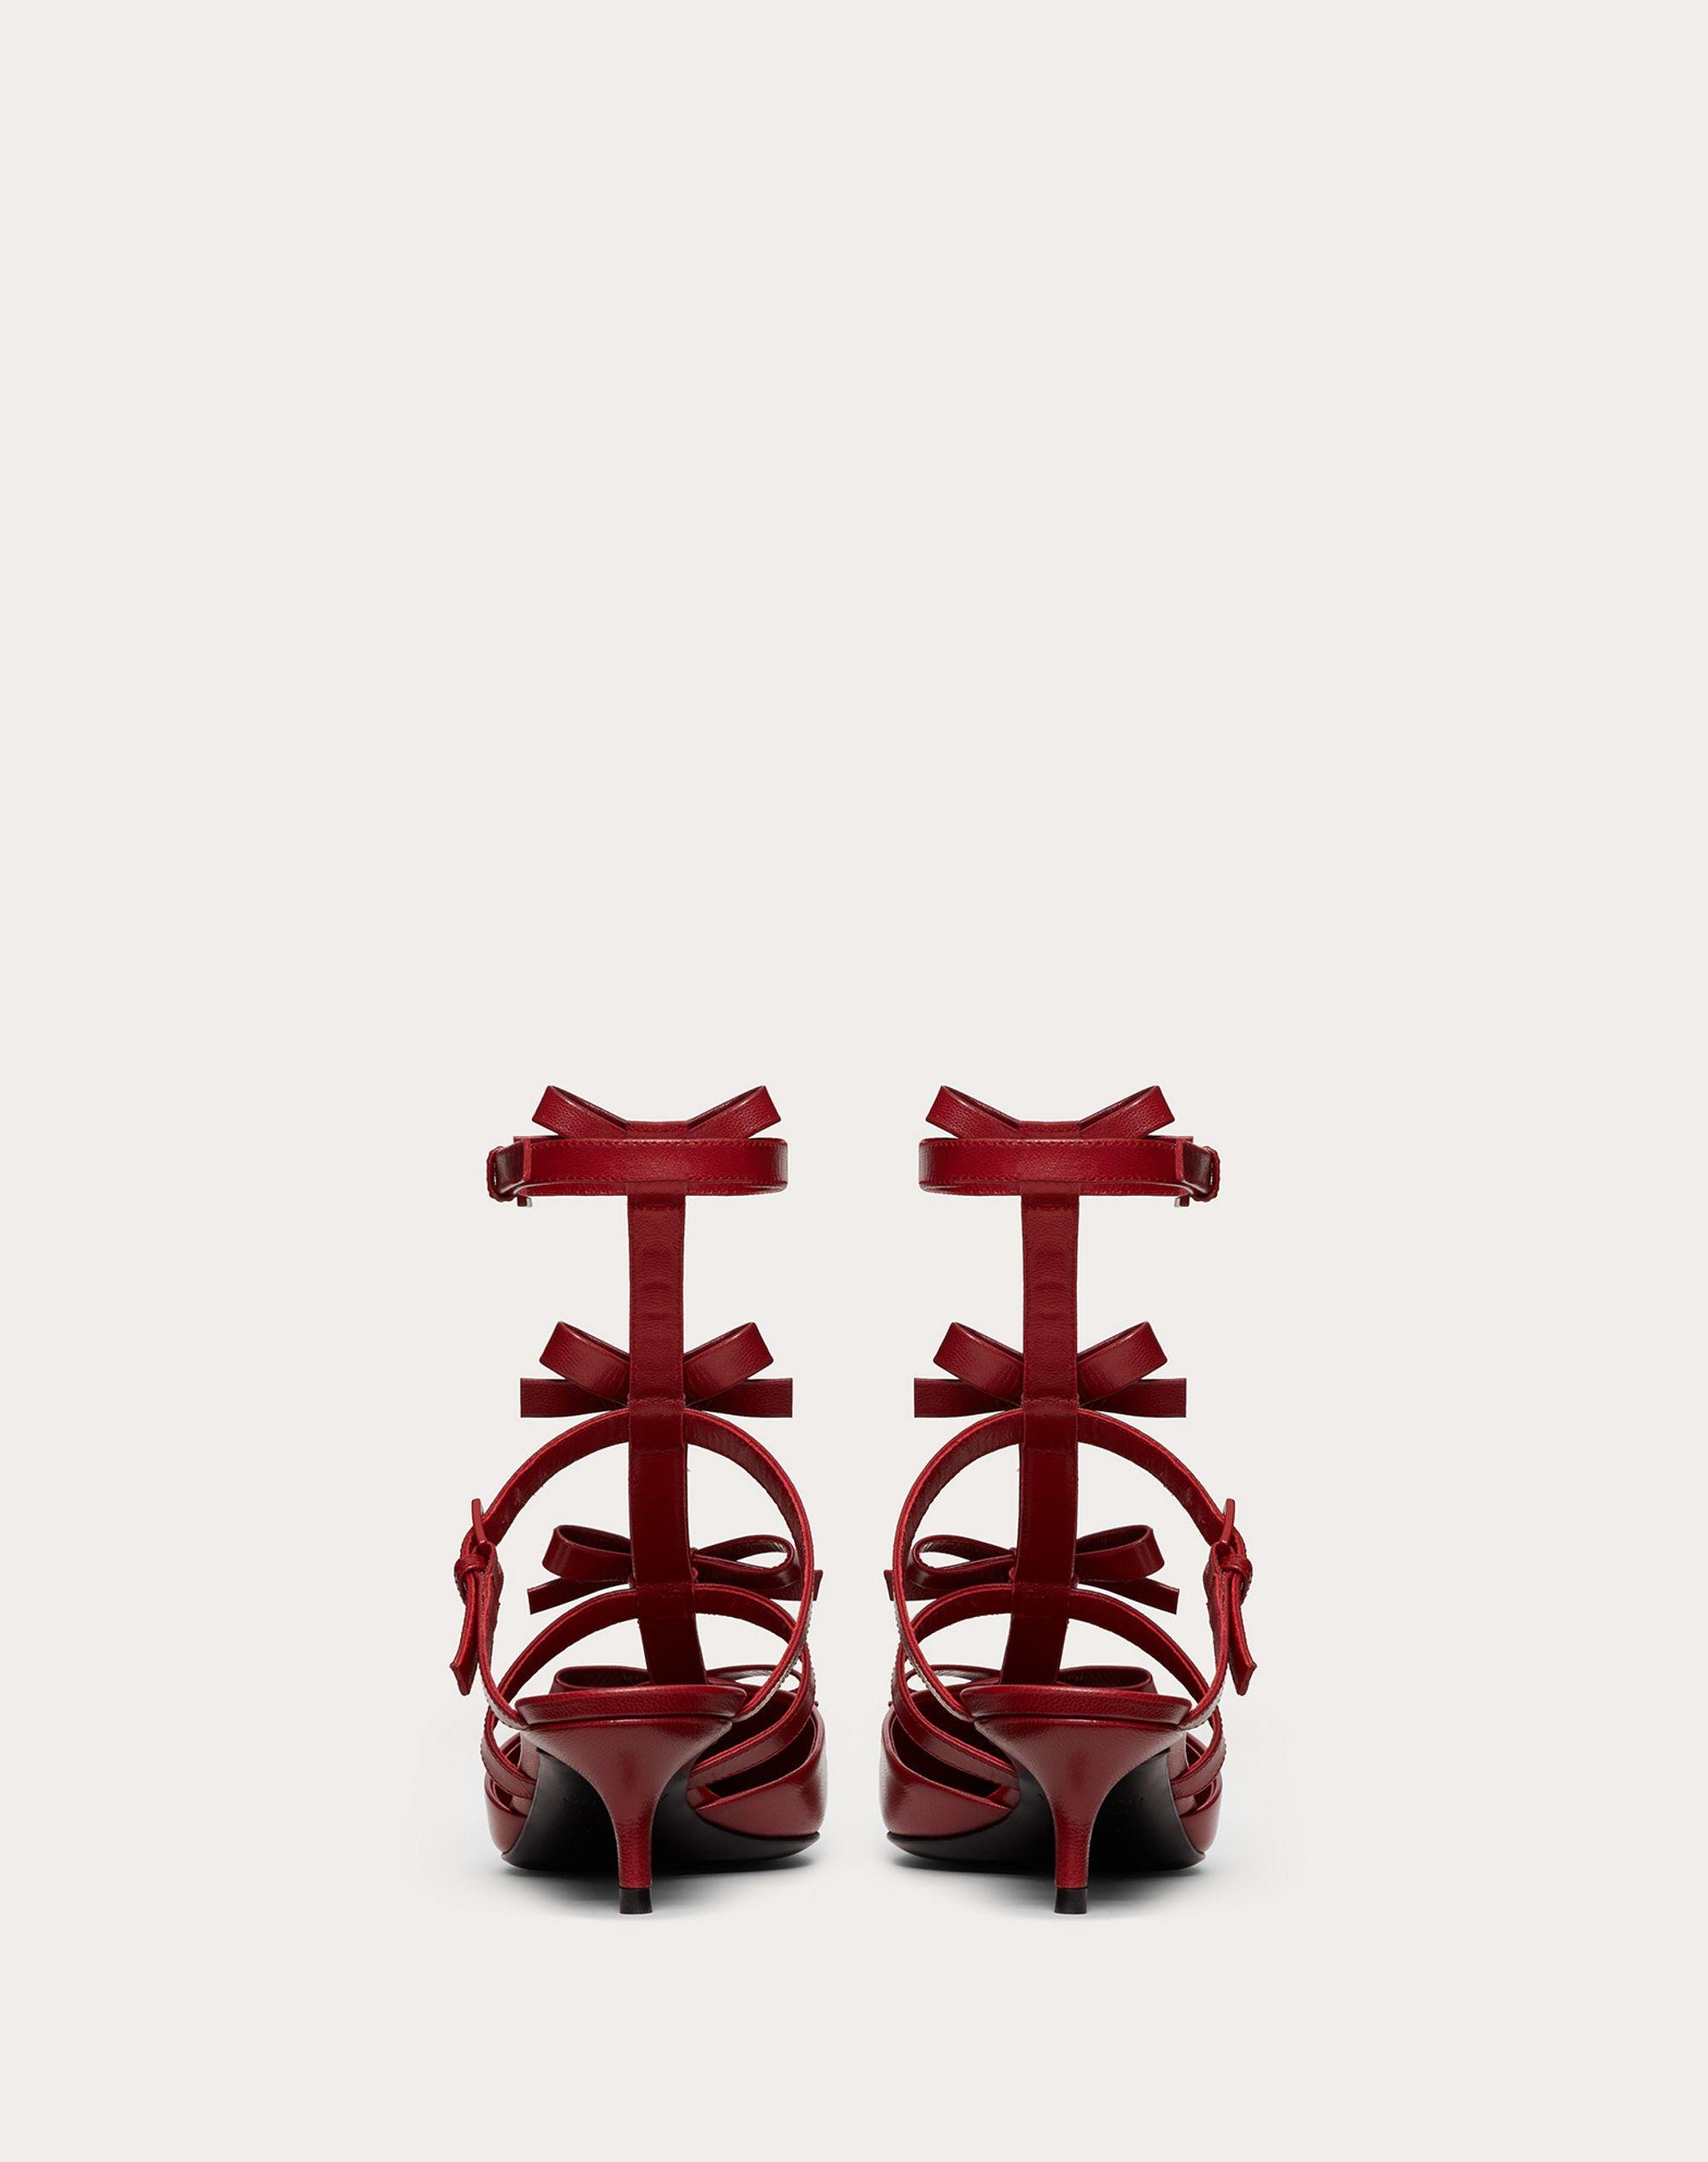 ANKLE STRAP PUMP WITH KIDSKIN FRENCH BOWS  40 MM 2